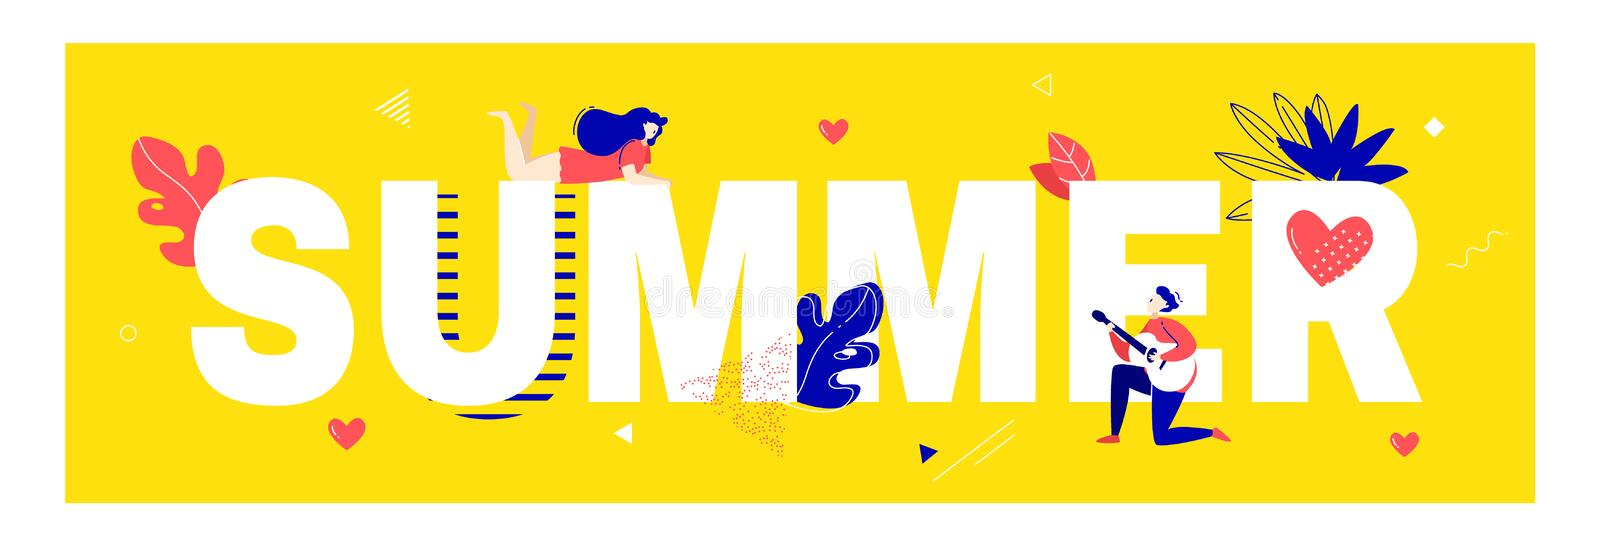 Summer poster with dreaming girl, boy playing the guitar, text, plants and graphic elements on yellow background. Funny card. In trendy flat linear style vector illustration